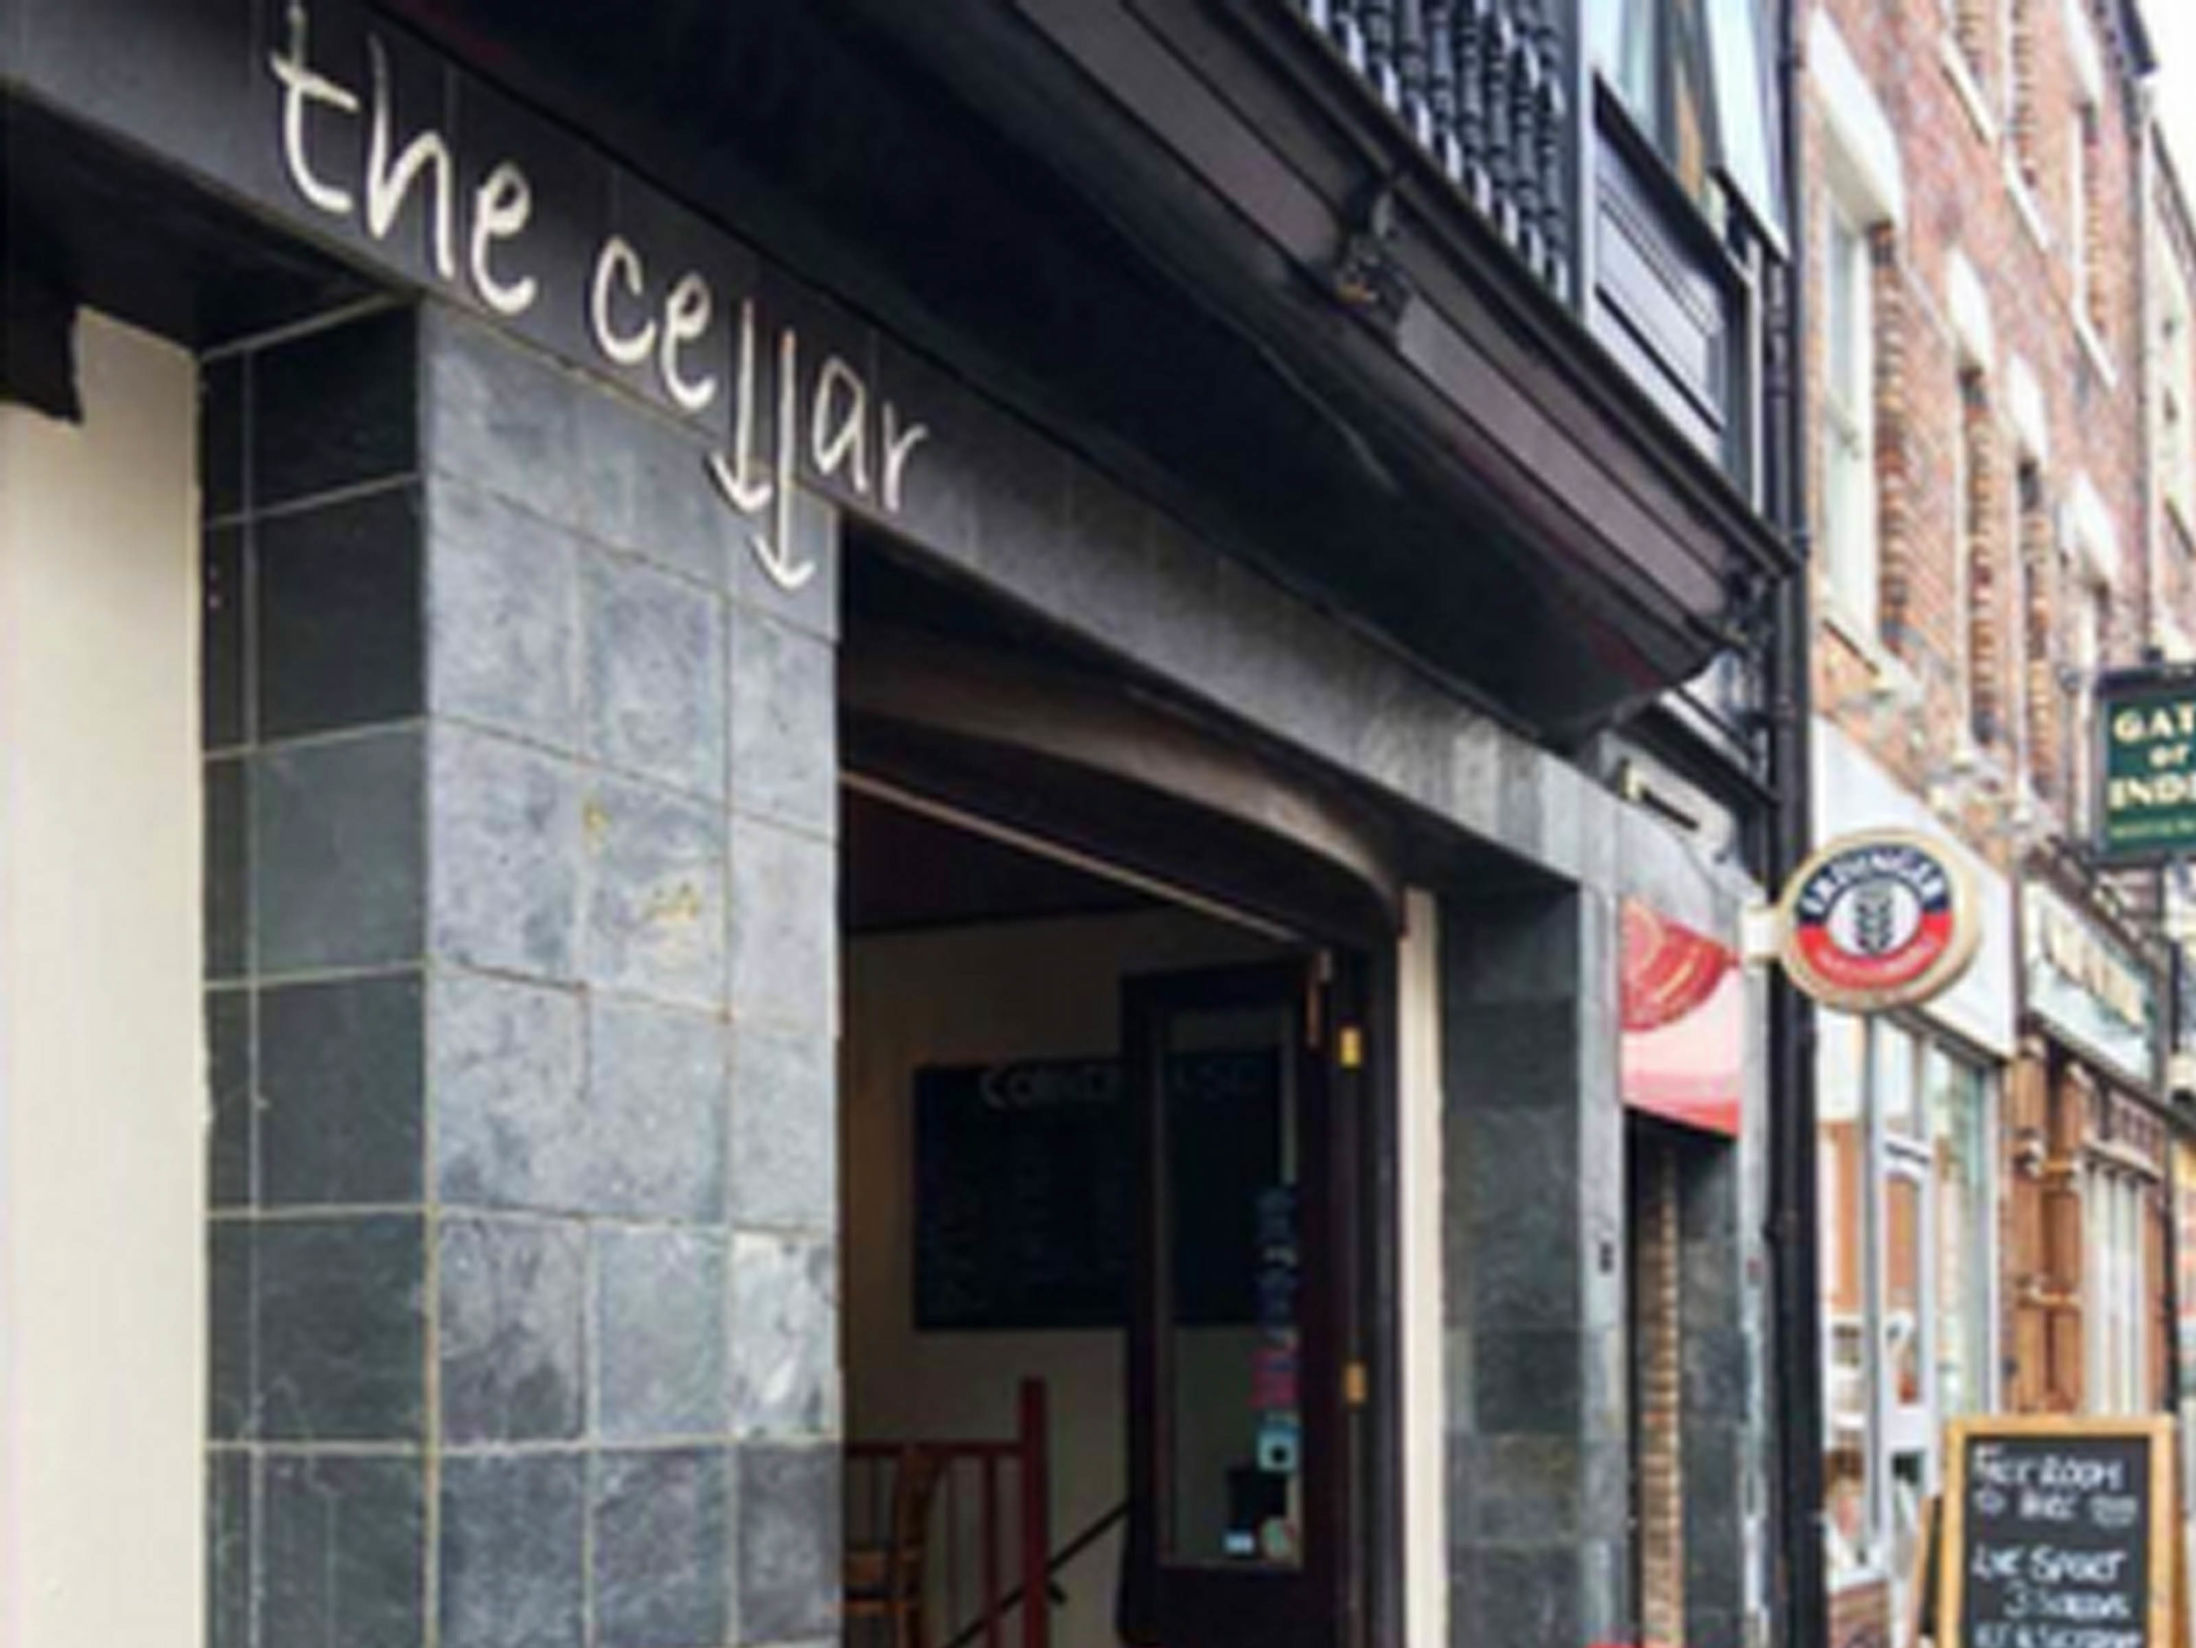 The Cellar - Best Bars in Chester